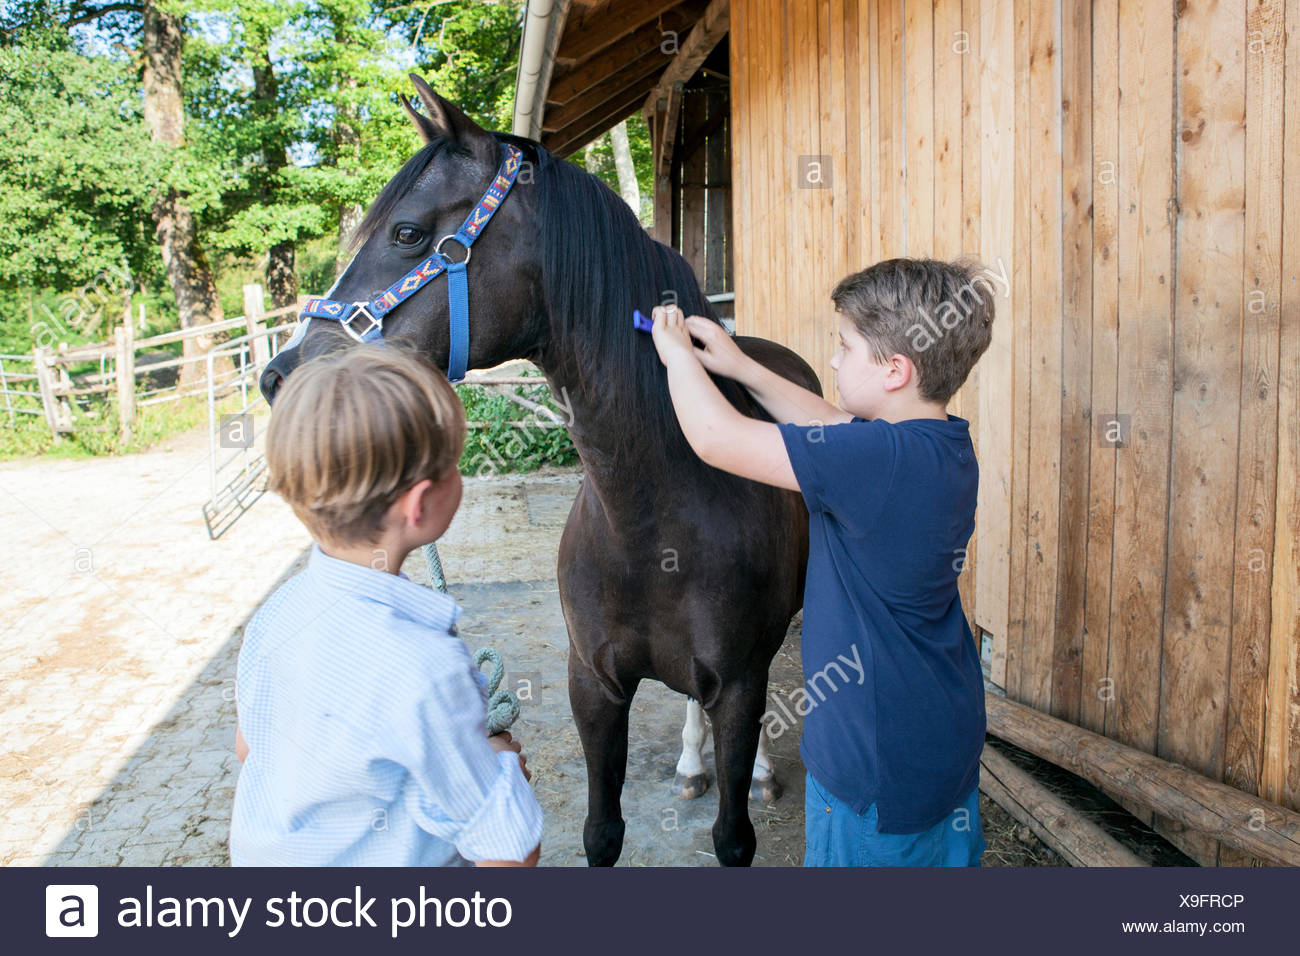 Two boys grooming horse together - Stock Image